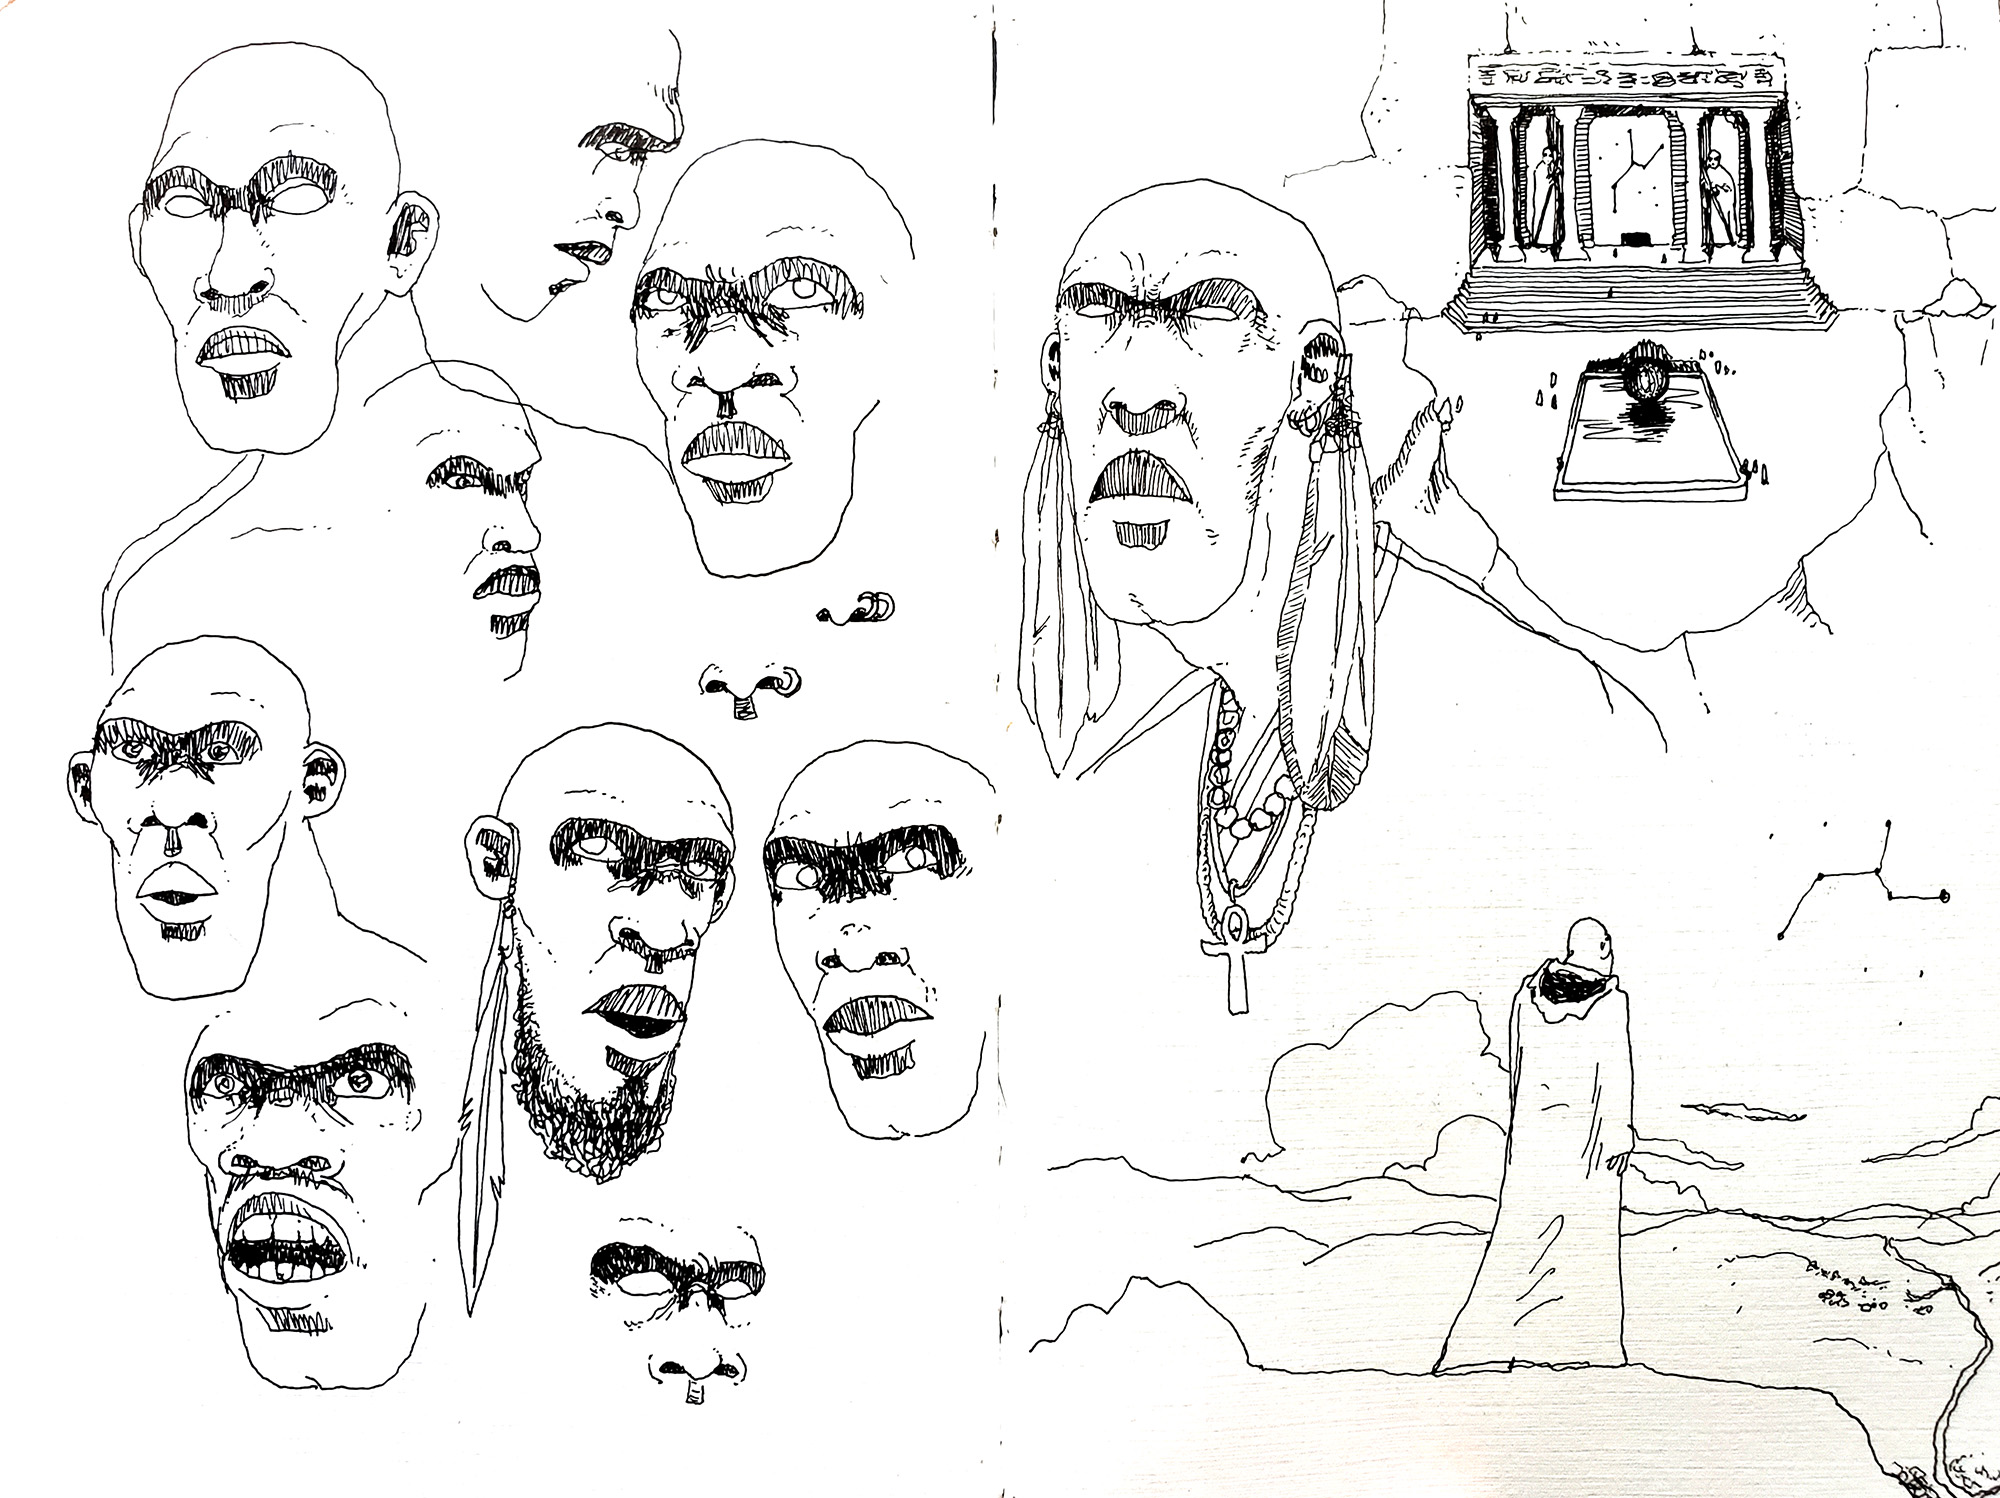 thoth-sketches.jpg